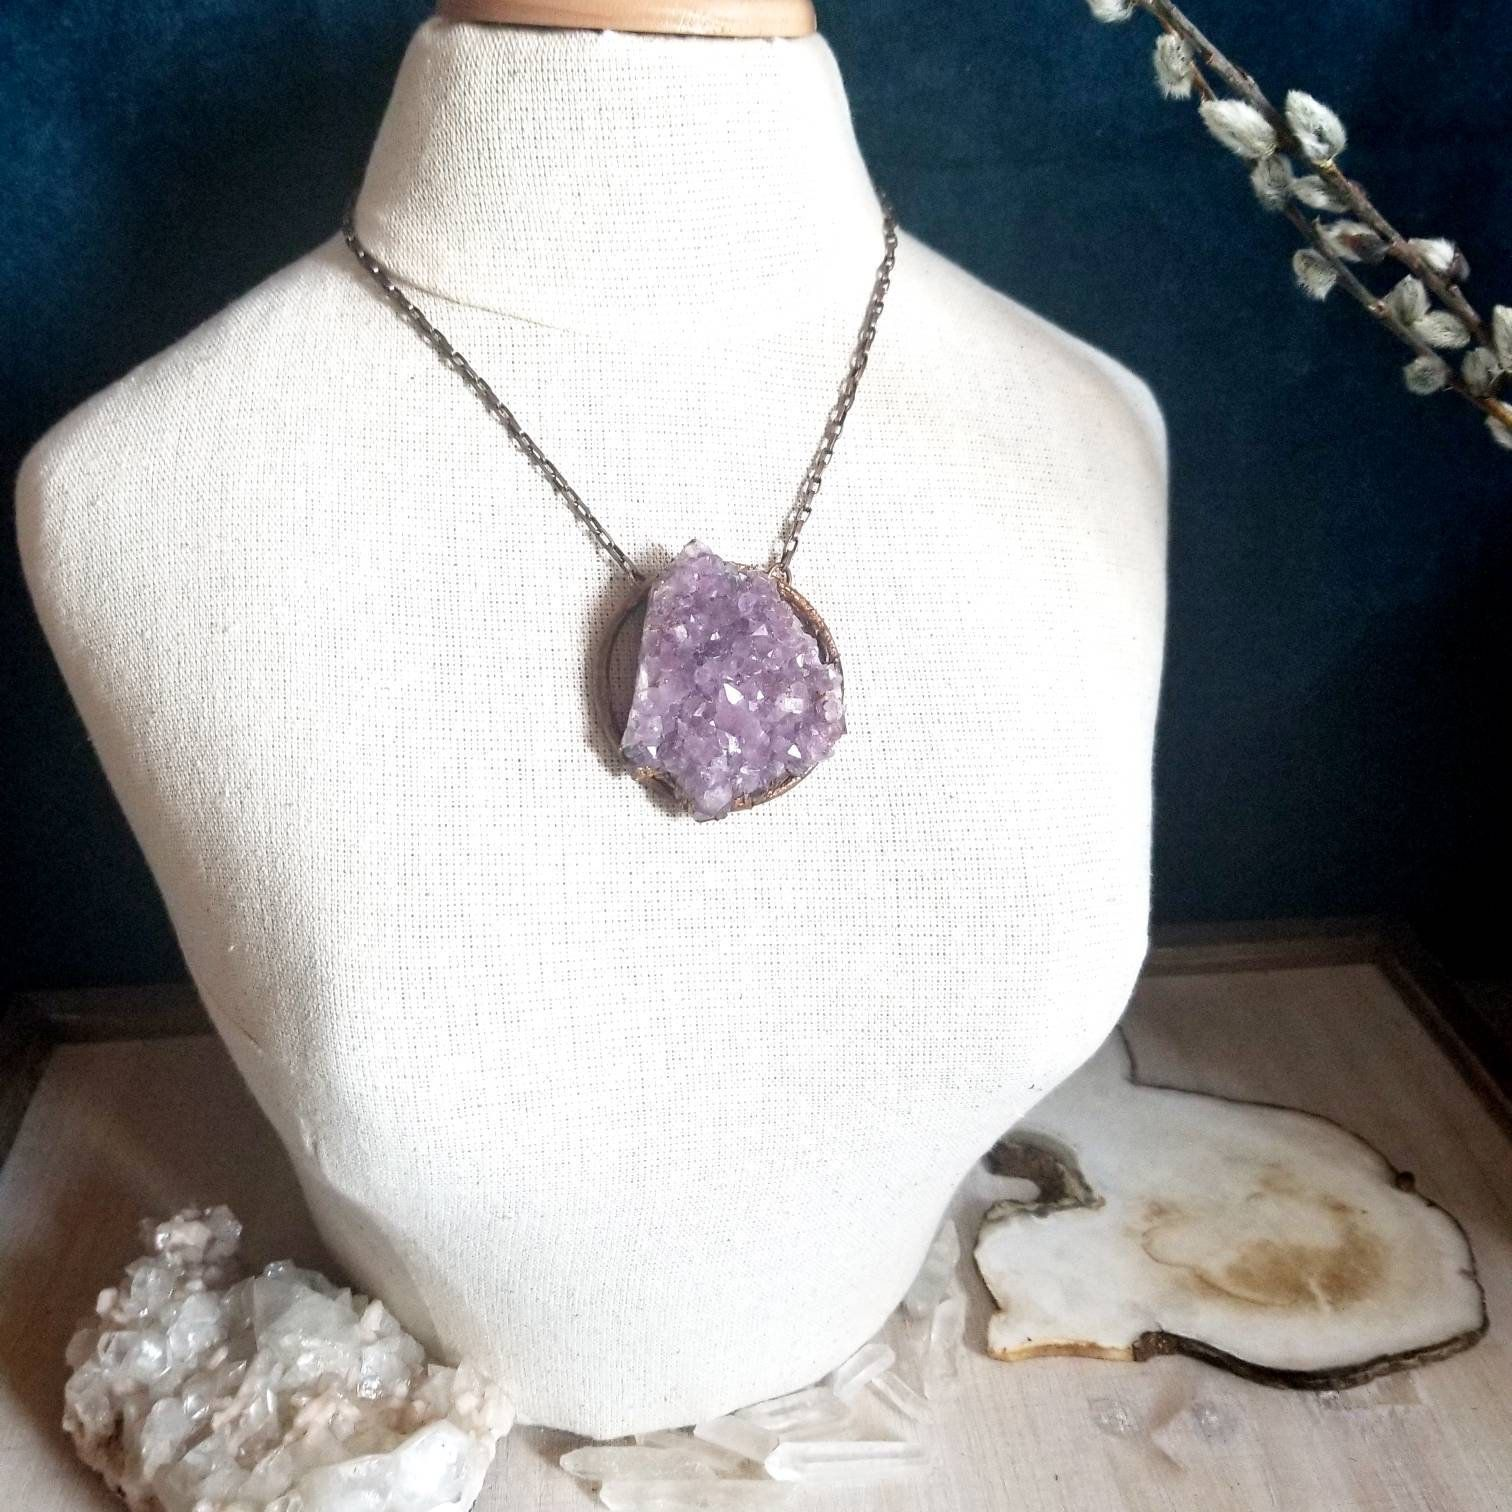 Large Raw Amethyst or Quartz Crystal Necklace Healing Crystals Chunky Natural Stone Statement Necklace Rough Quartz or Amethyst Jewelry